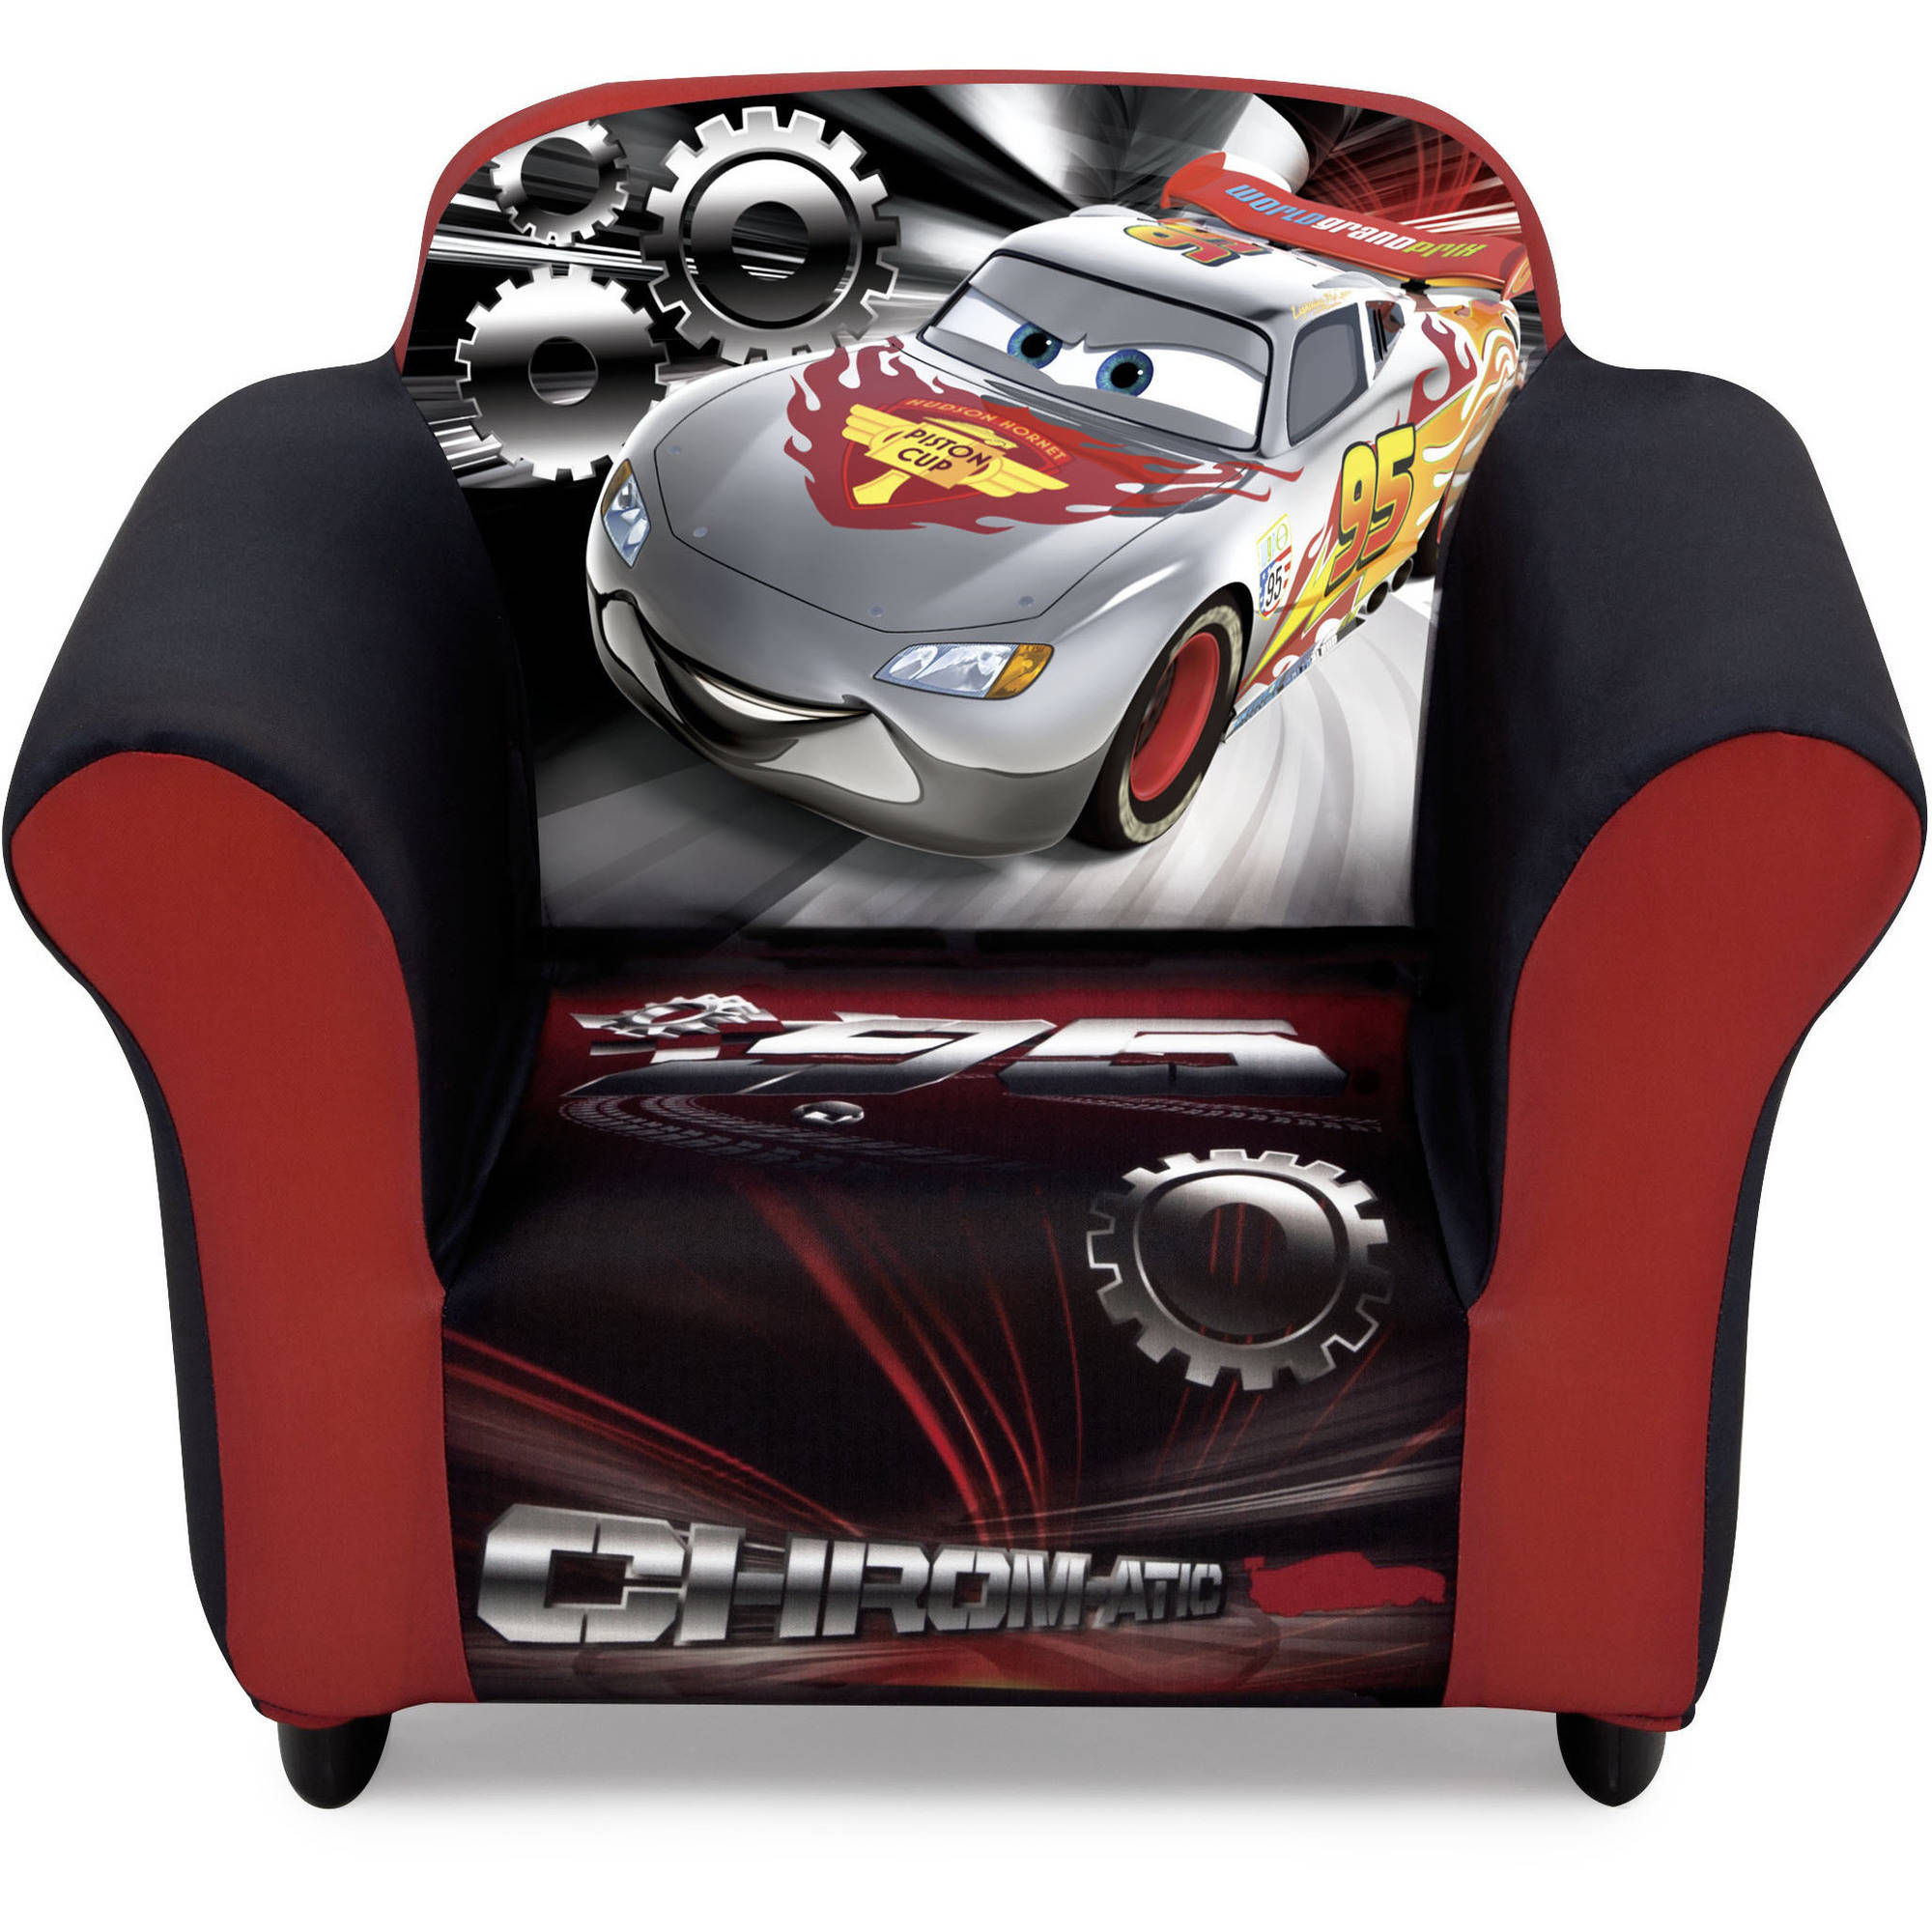 Disney/Pixar Cars Upholstered Chair (with Sculpted Plastic Frame)